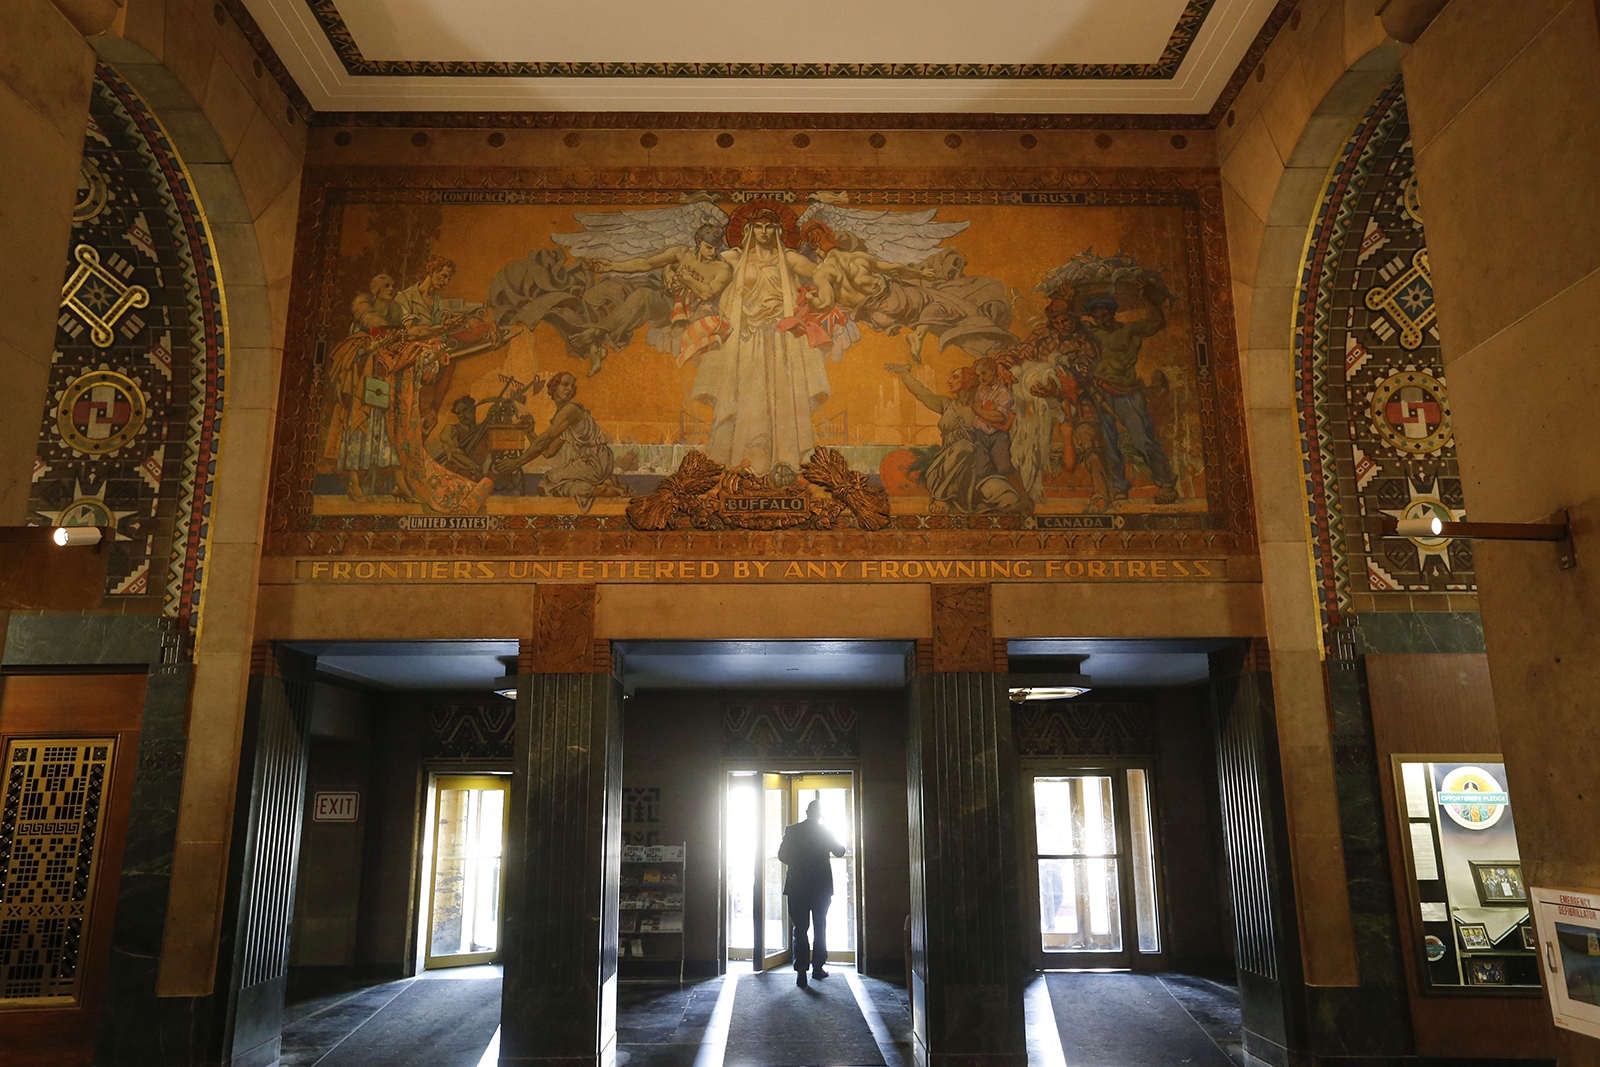 The mural 'Frontiers Unfettered by any Frowning Fortress' by artist William de Leftwich-Dodge over the main entrance in the grand lobby of Buffalo City Hall, Monday, June 20, 2016.  (Photo by Derek Gee)